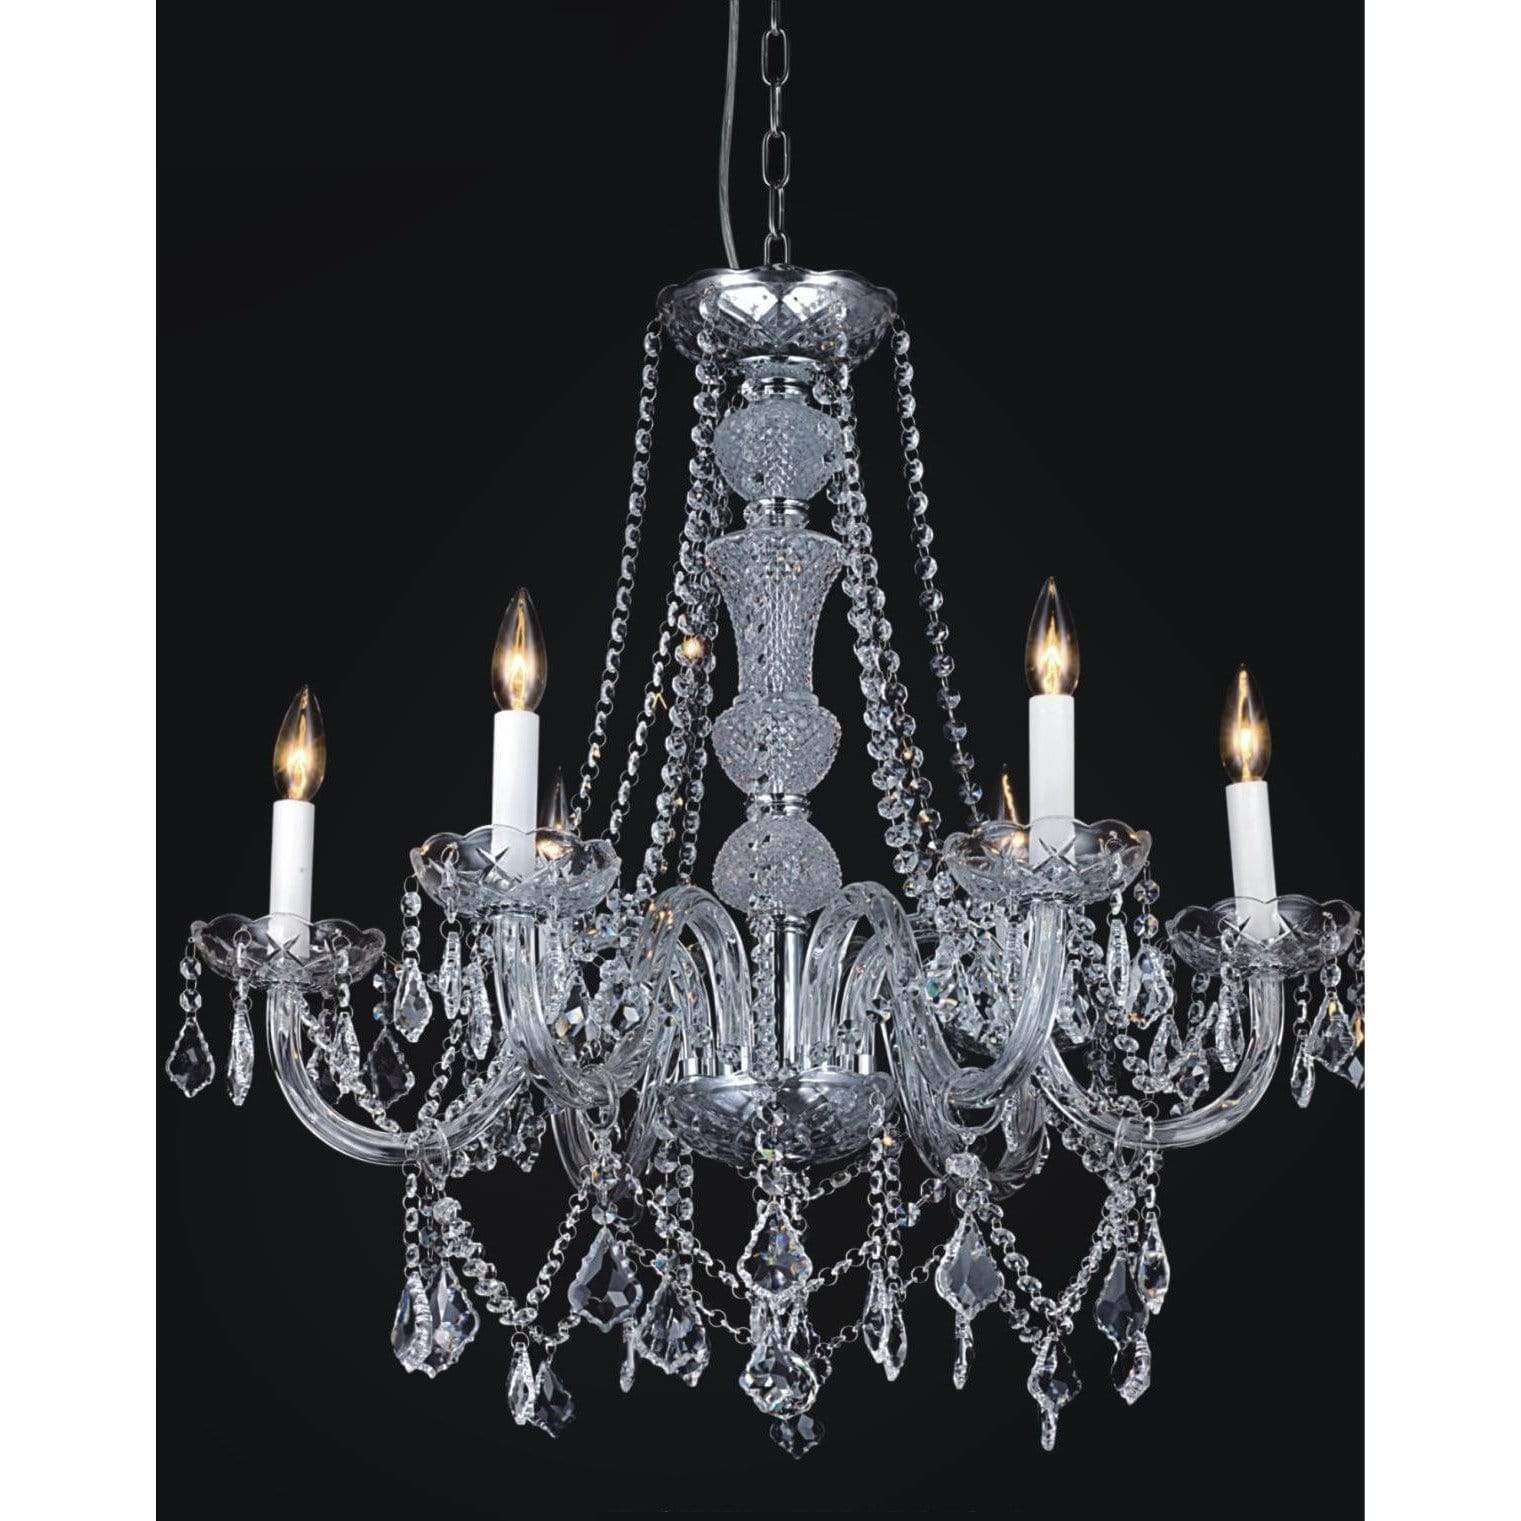 CWI Lighting Chandeliers Chrome / K9 Clear Princeton 6 Light Down Chandelier with Chrome finish by CWI Lighting 8023P24C-6